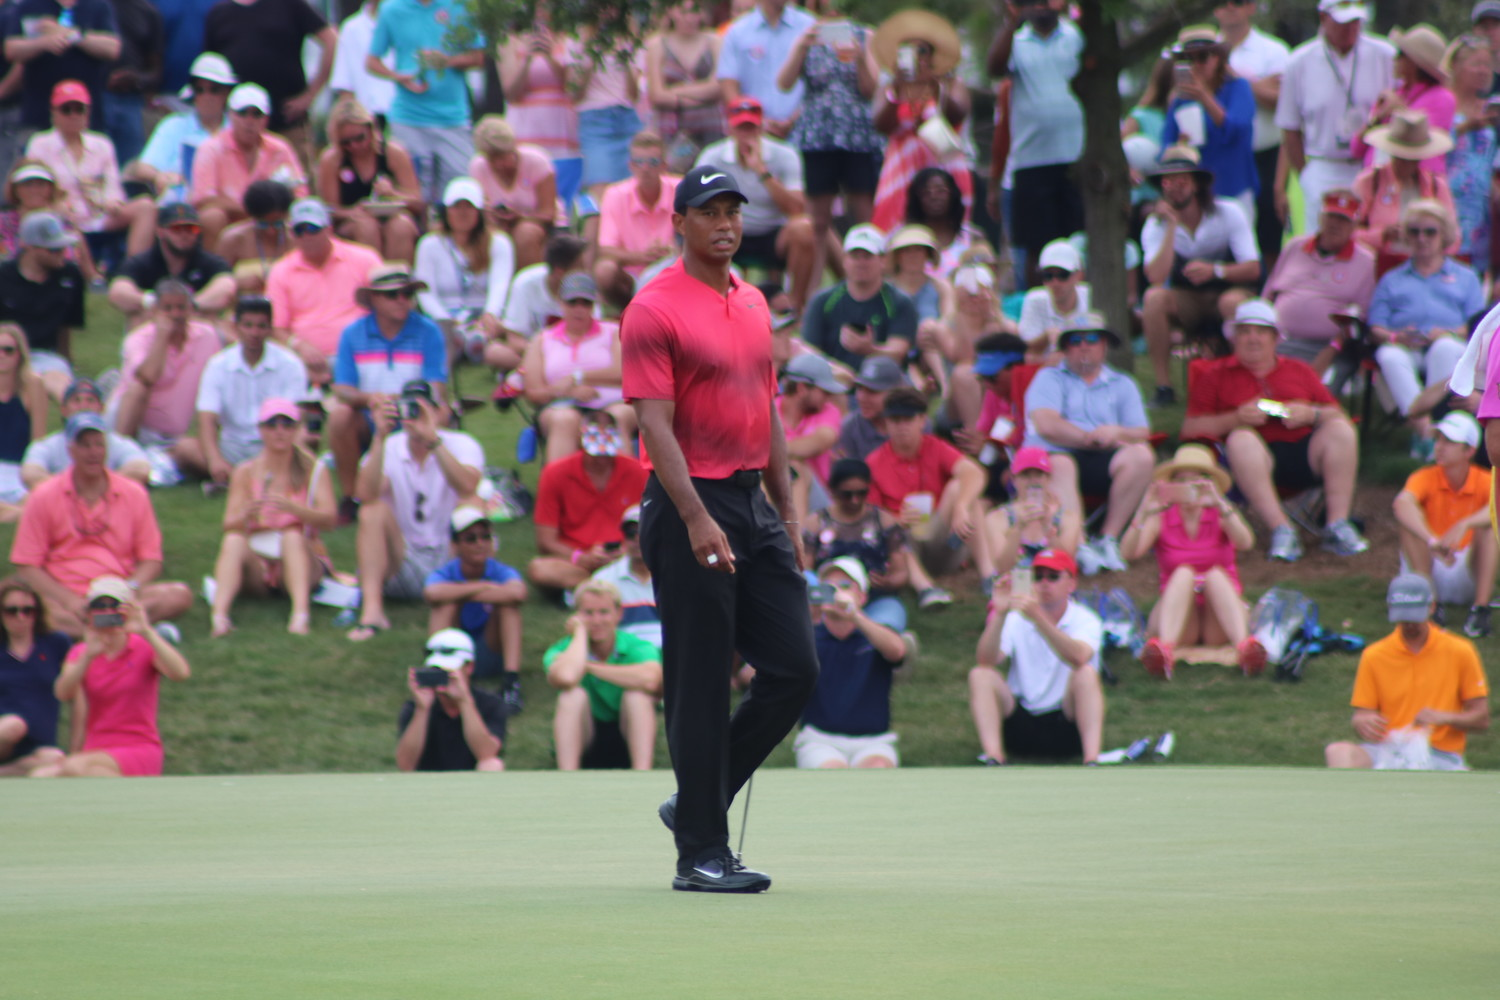 Tiger Woods walks around a green as fans gaze in amazement from afar.